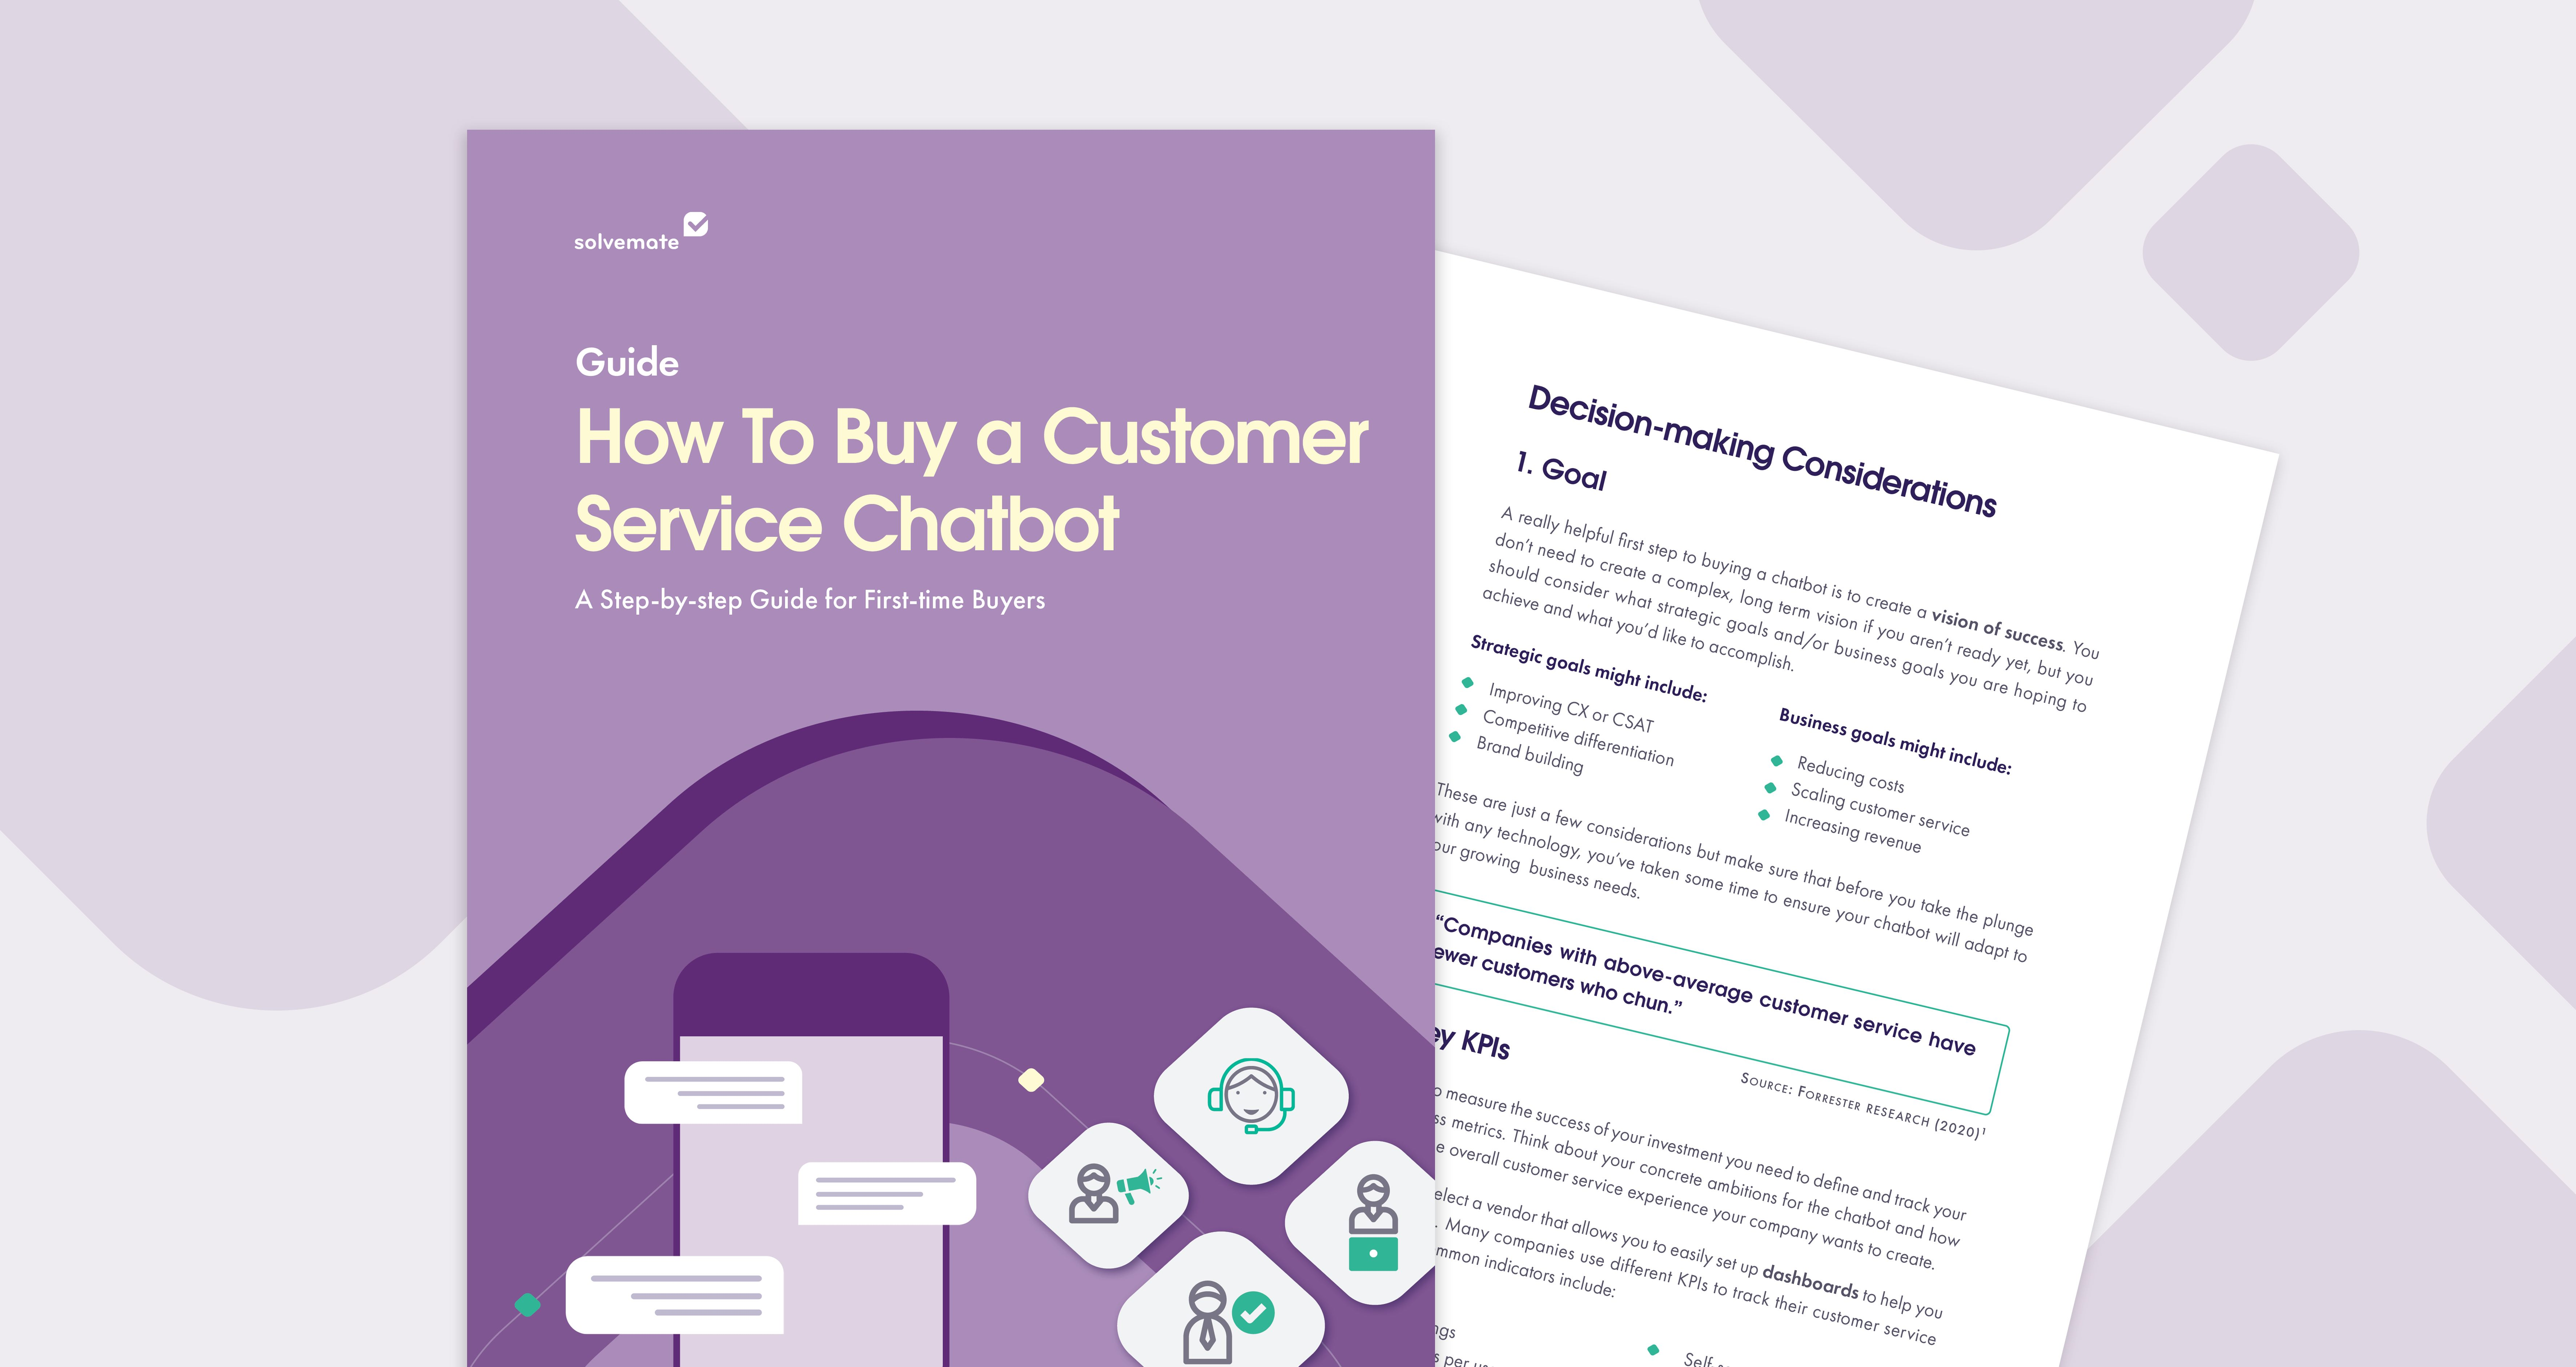 How to Buy a Customer service chatbot cover image